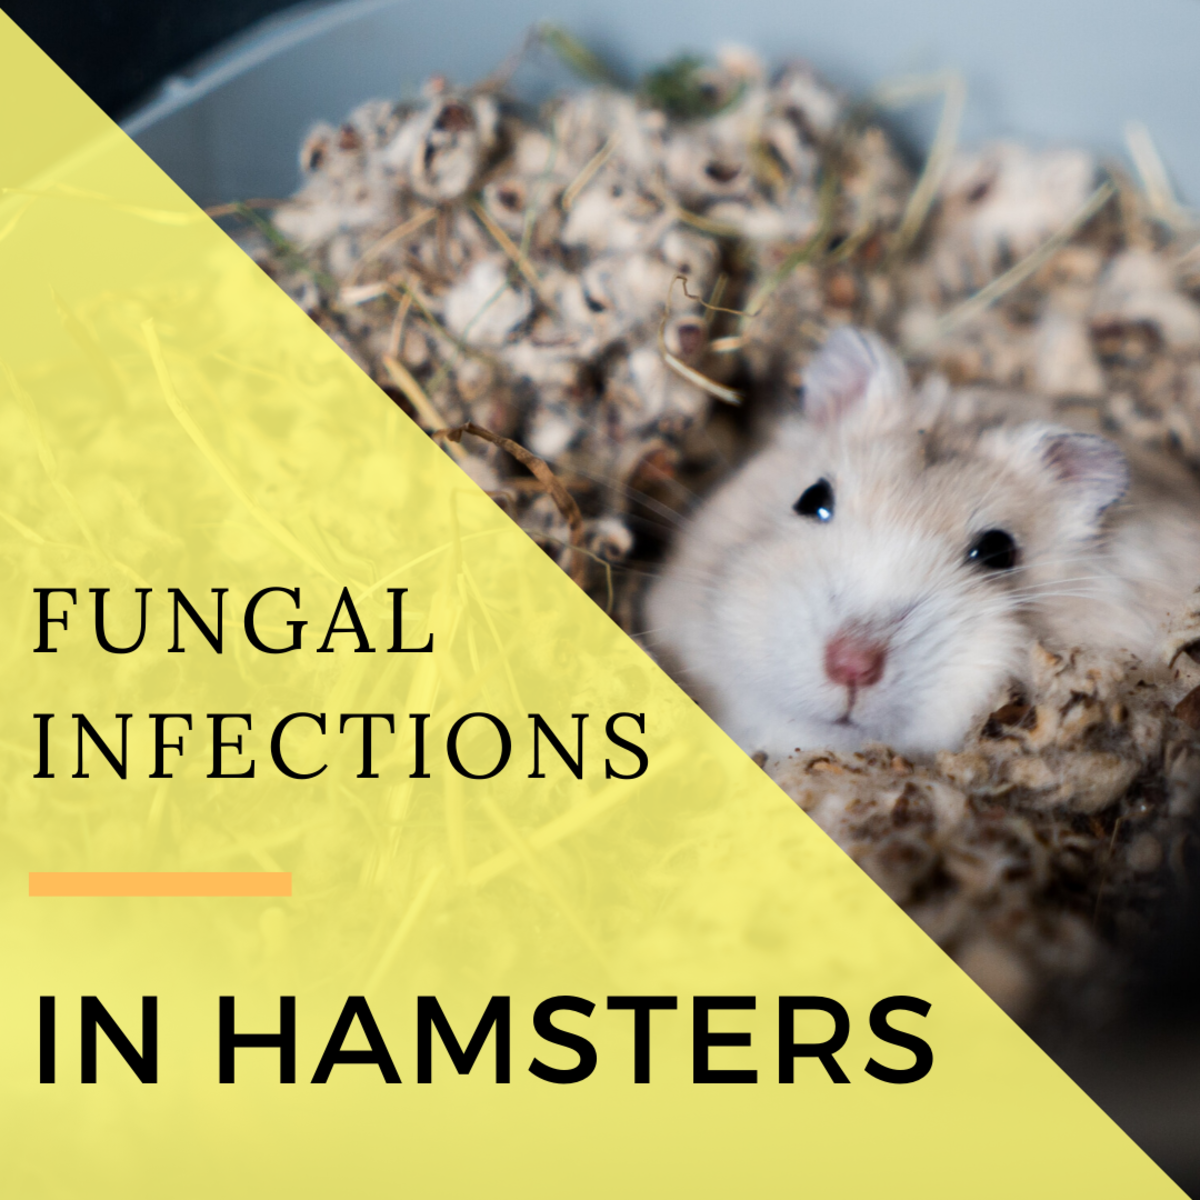 Sick Hamsters: Signs of Fungal Infections and Treatments